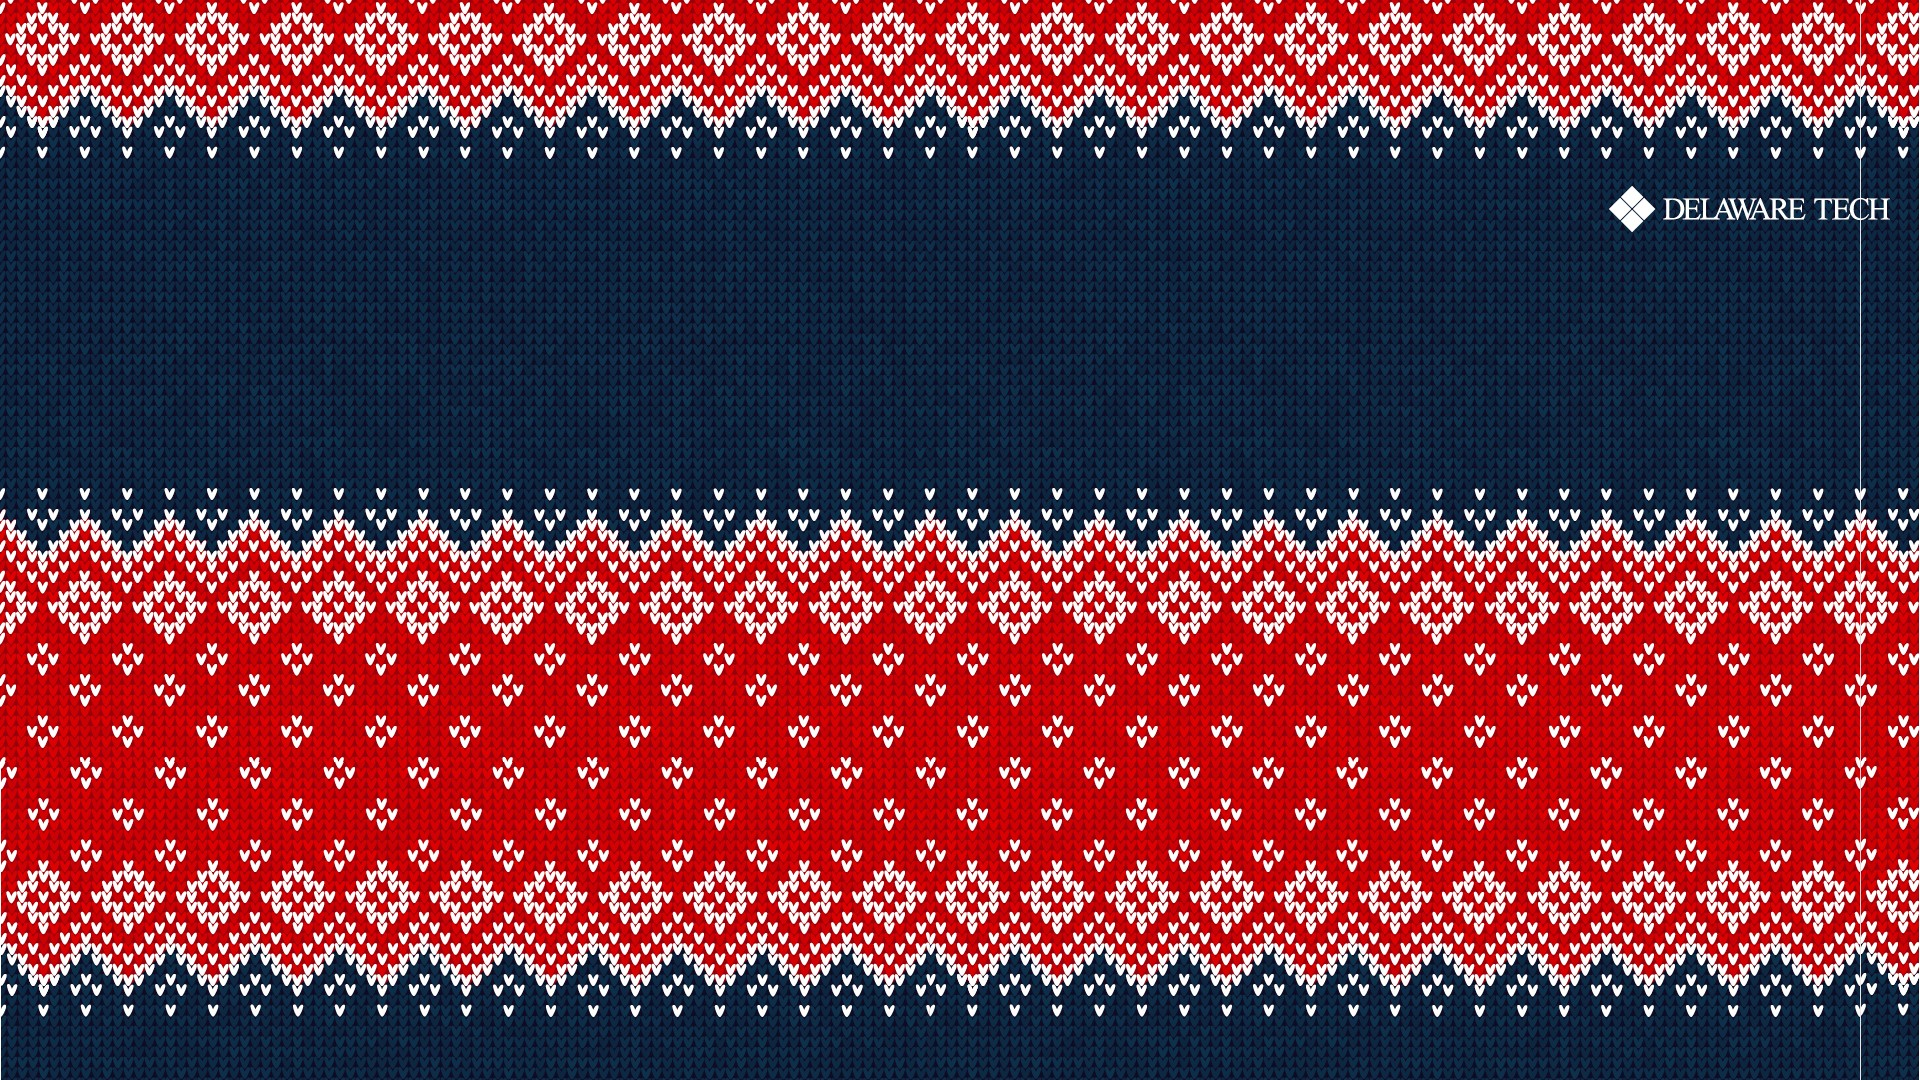 A red and blue sweater texture with the Delaware Tech logo at the top right